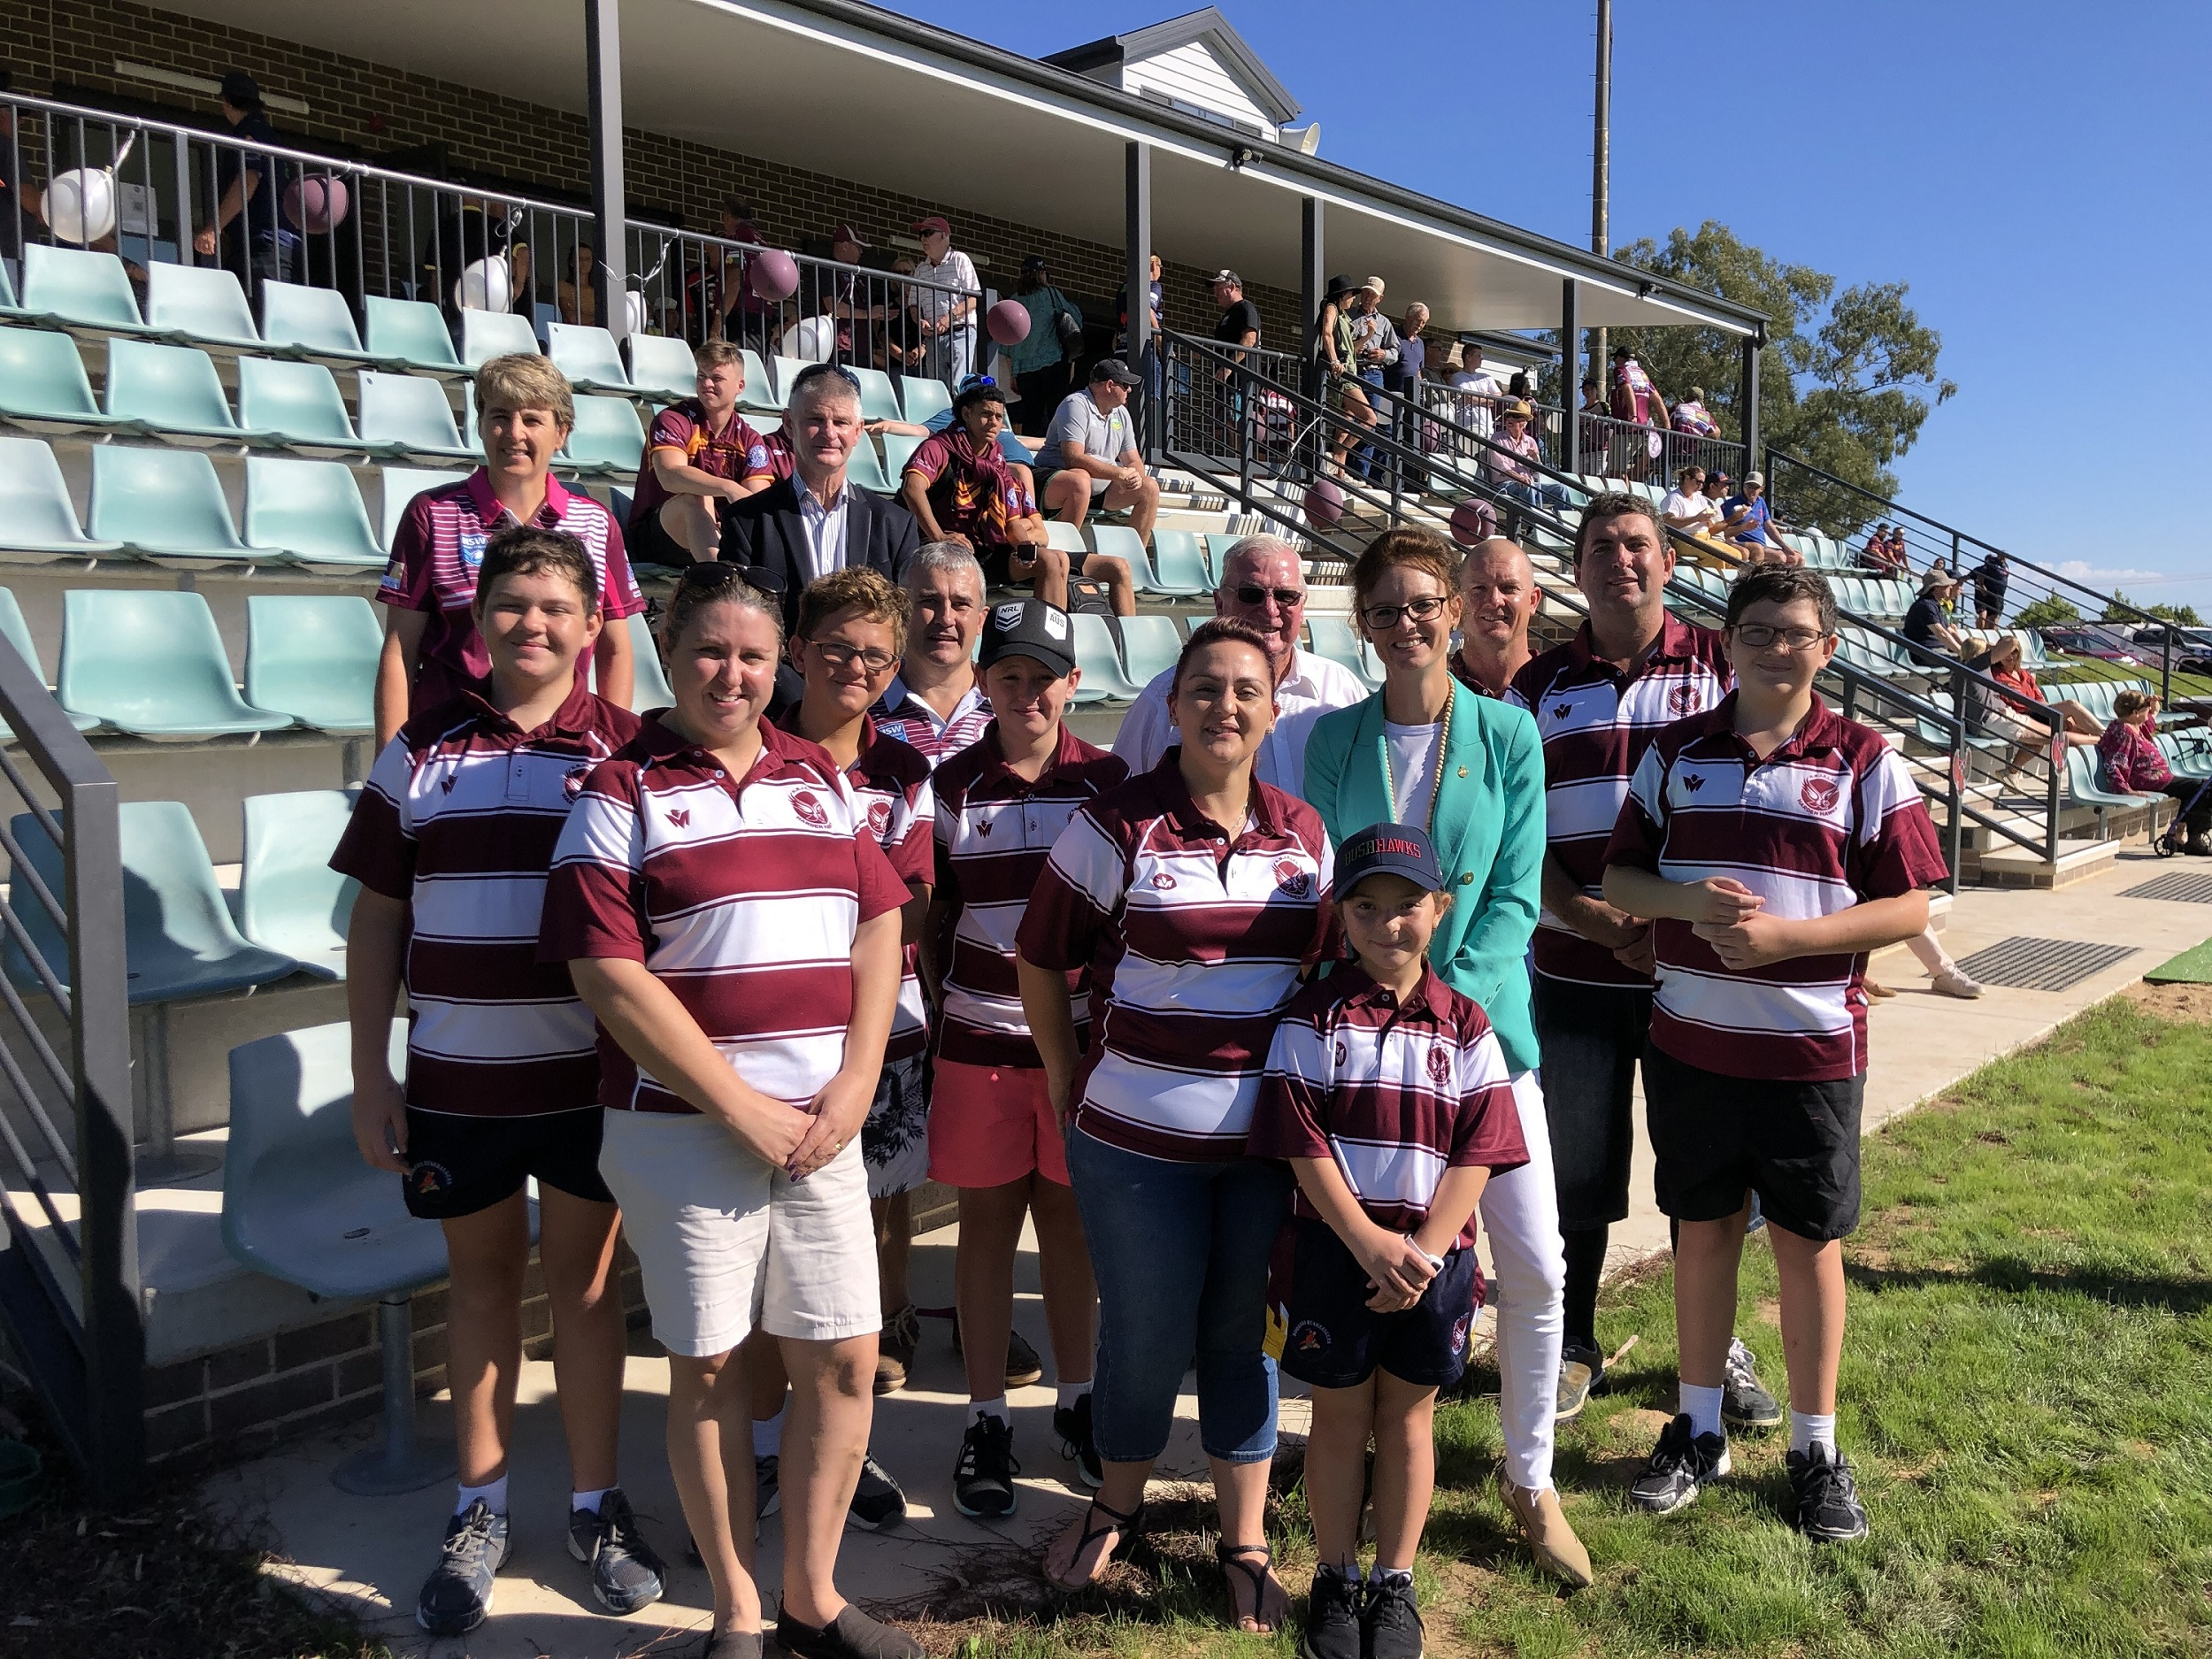 Steph Cooke stands with people in Harden football shirts in front of a green grandstand.